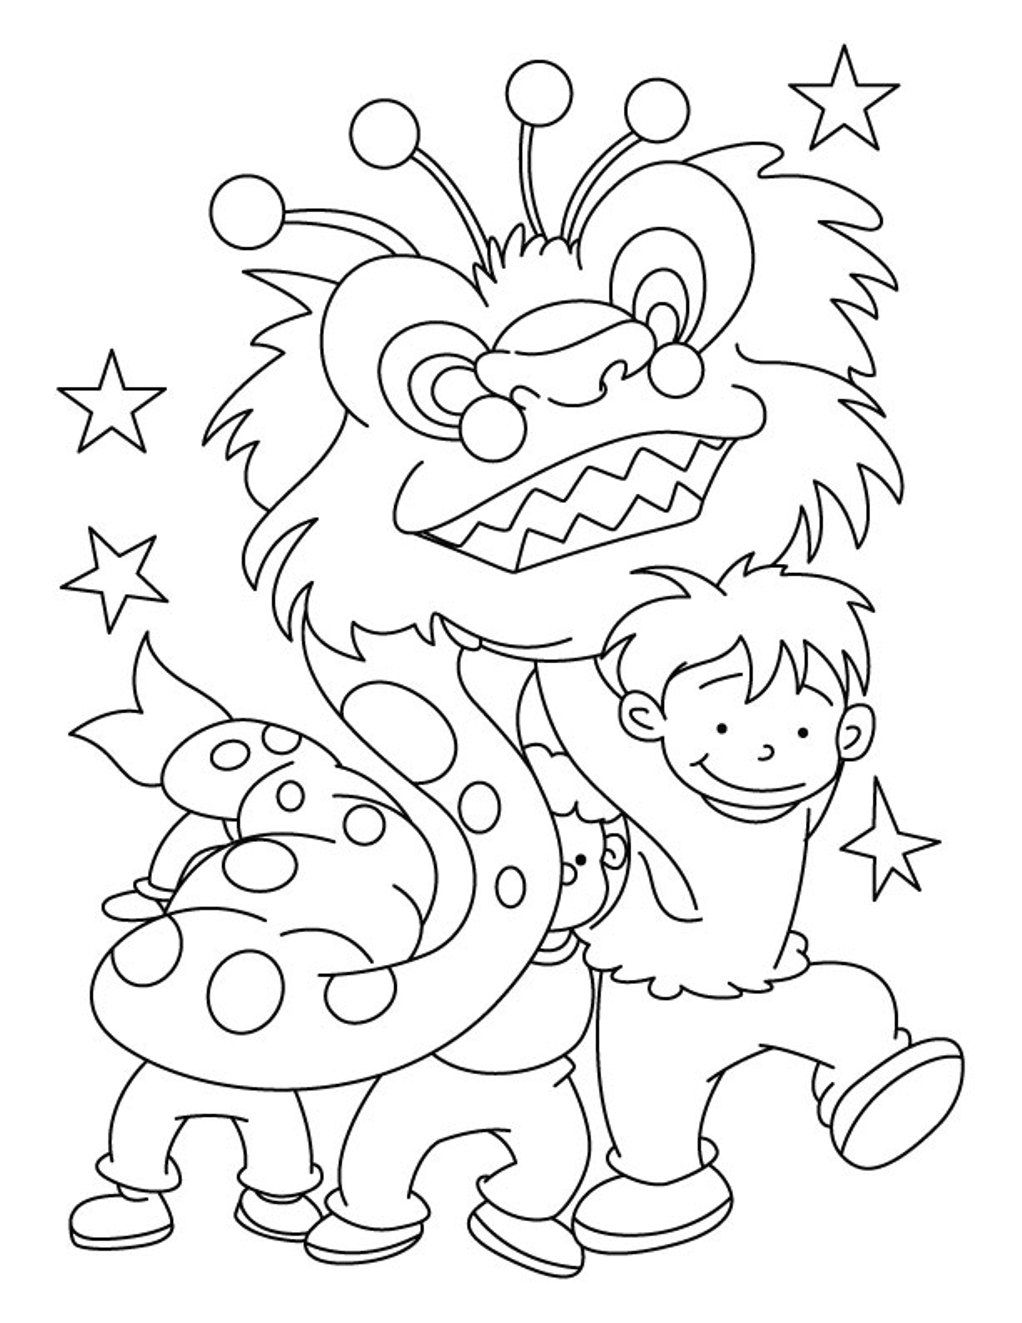 dragon chinese new year coloring pagesjpg 1022 - Chinese New Year Coloring Pages